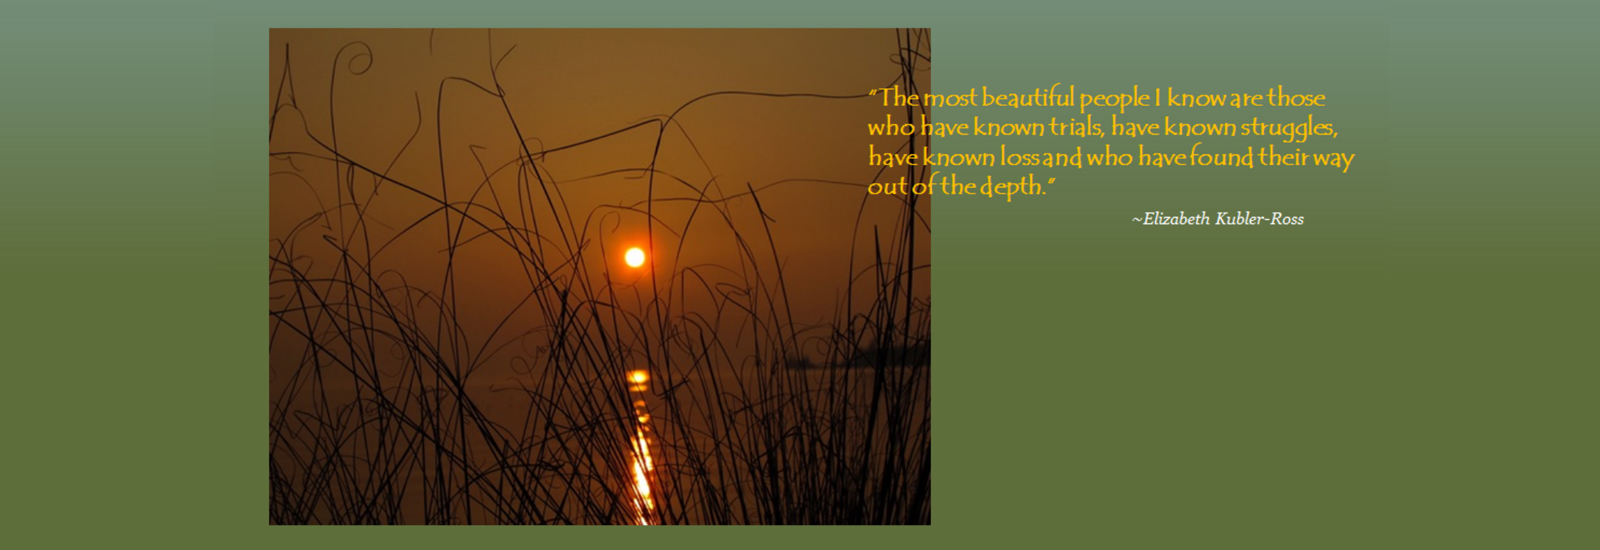 english_slide_2-sunset-through-the-reeds